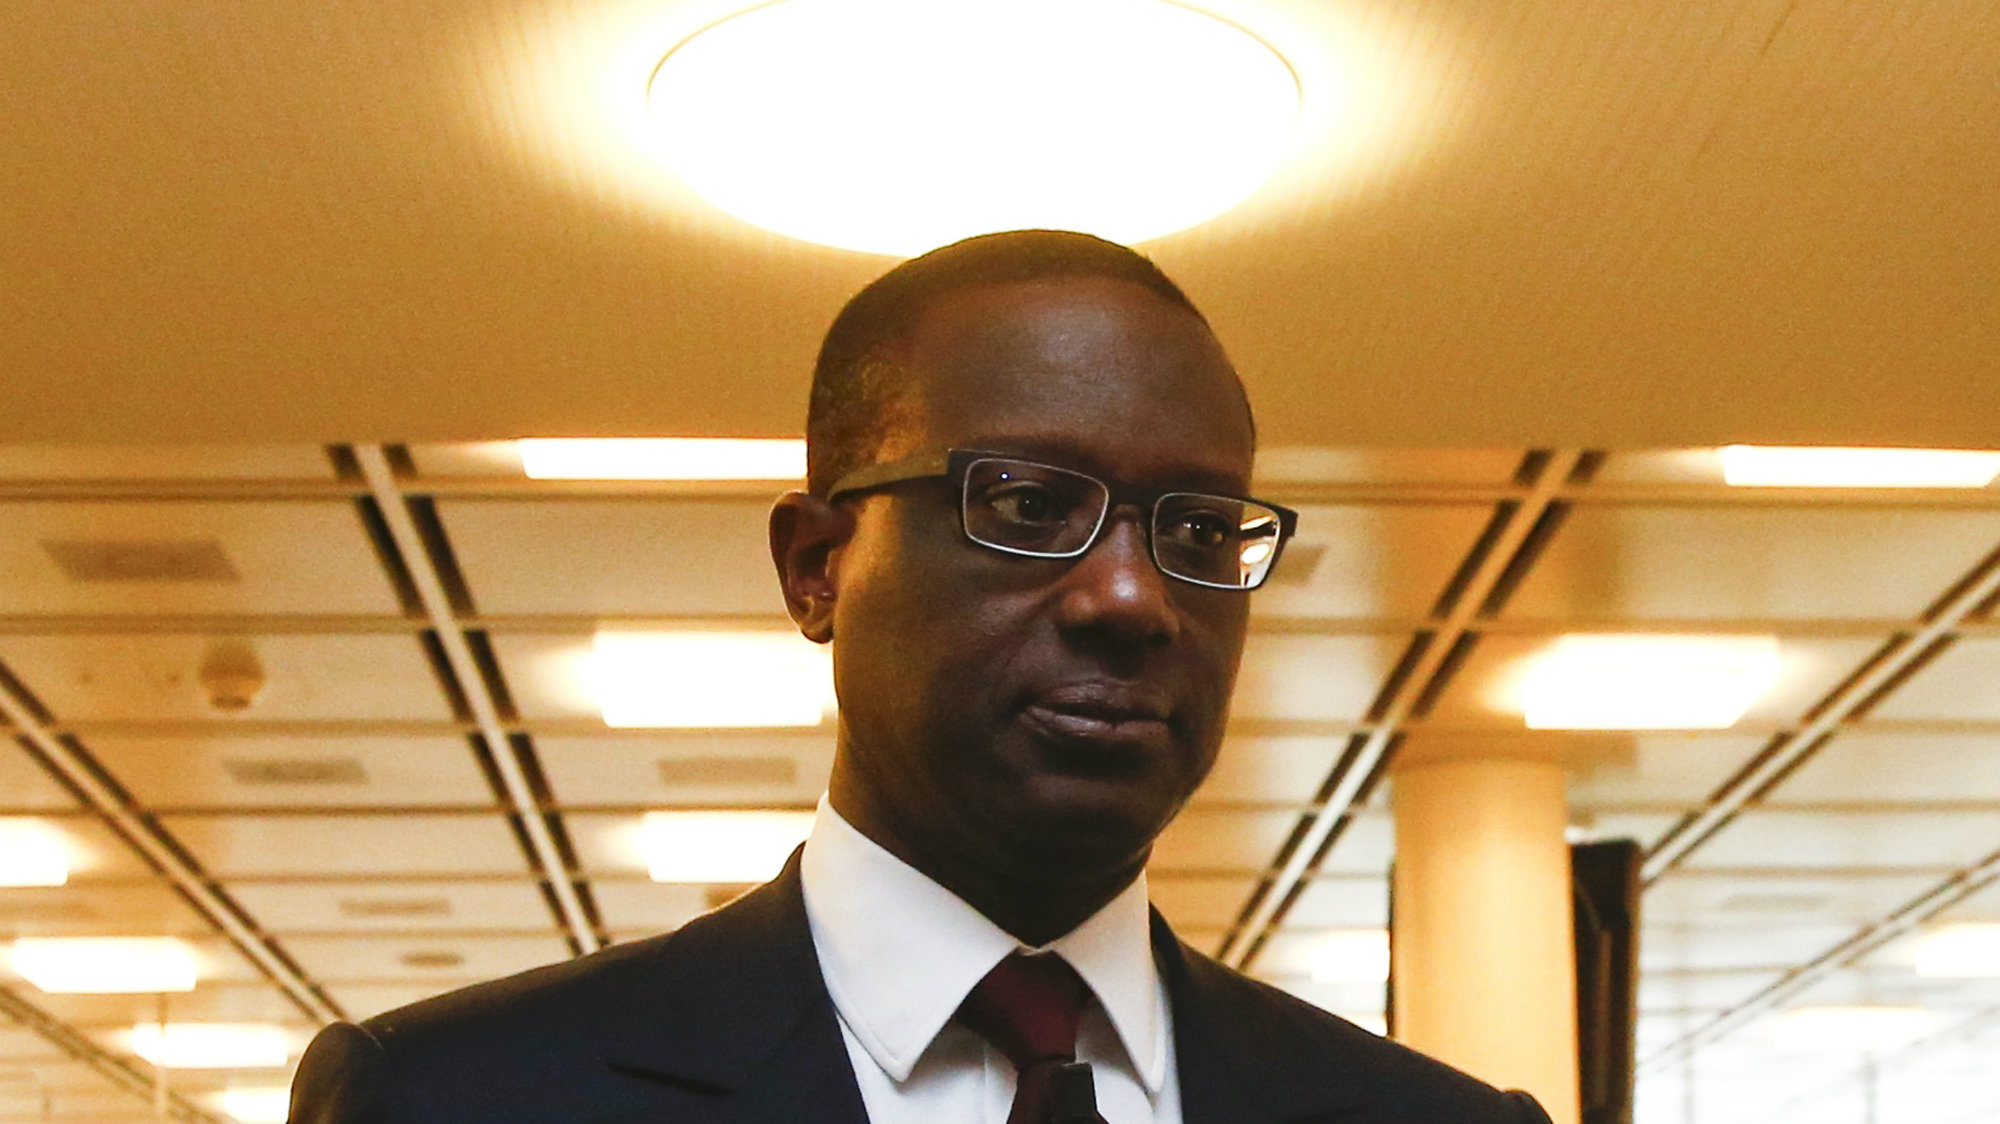 Tidjane Thiam arrives for a Credit Suisse news conference in Zurich.